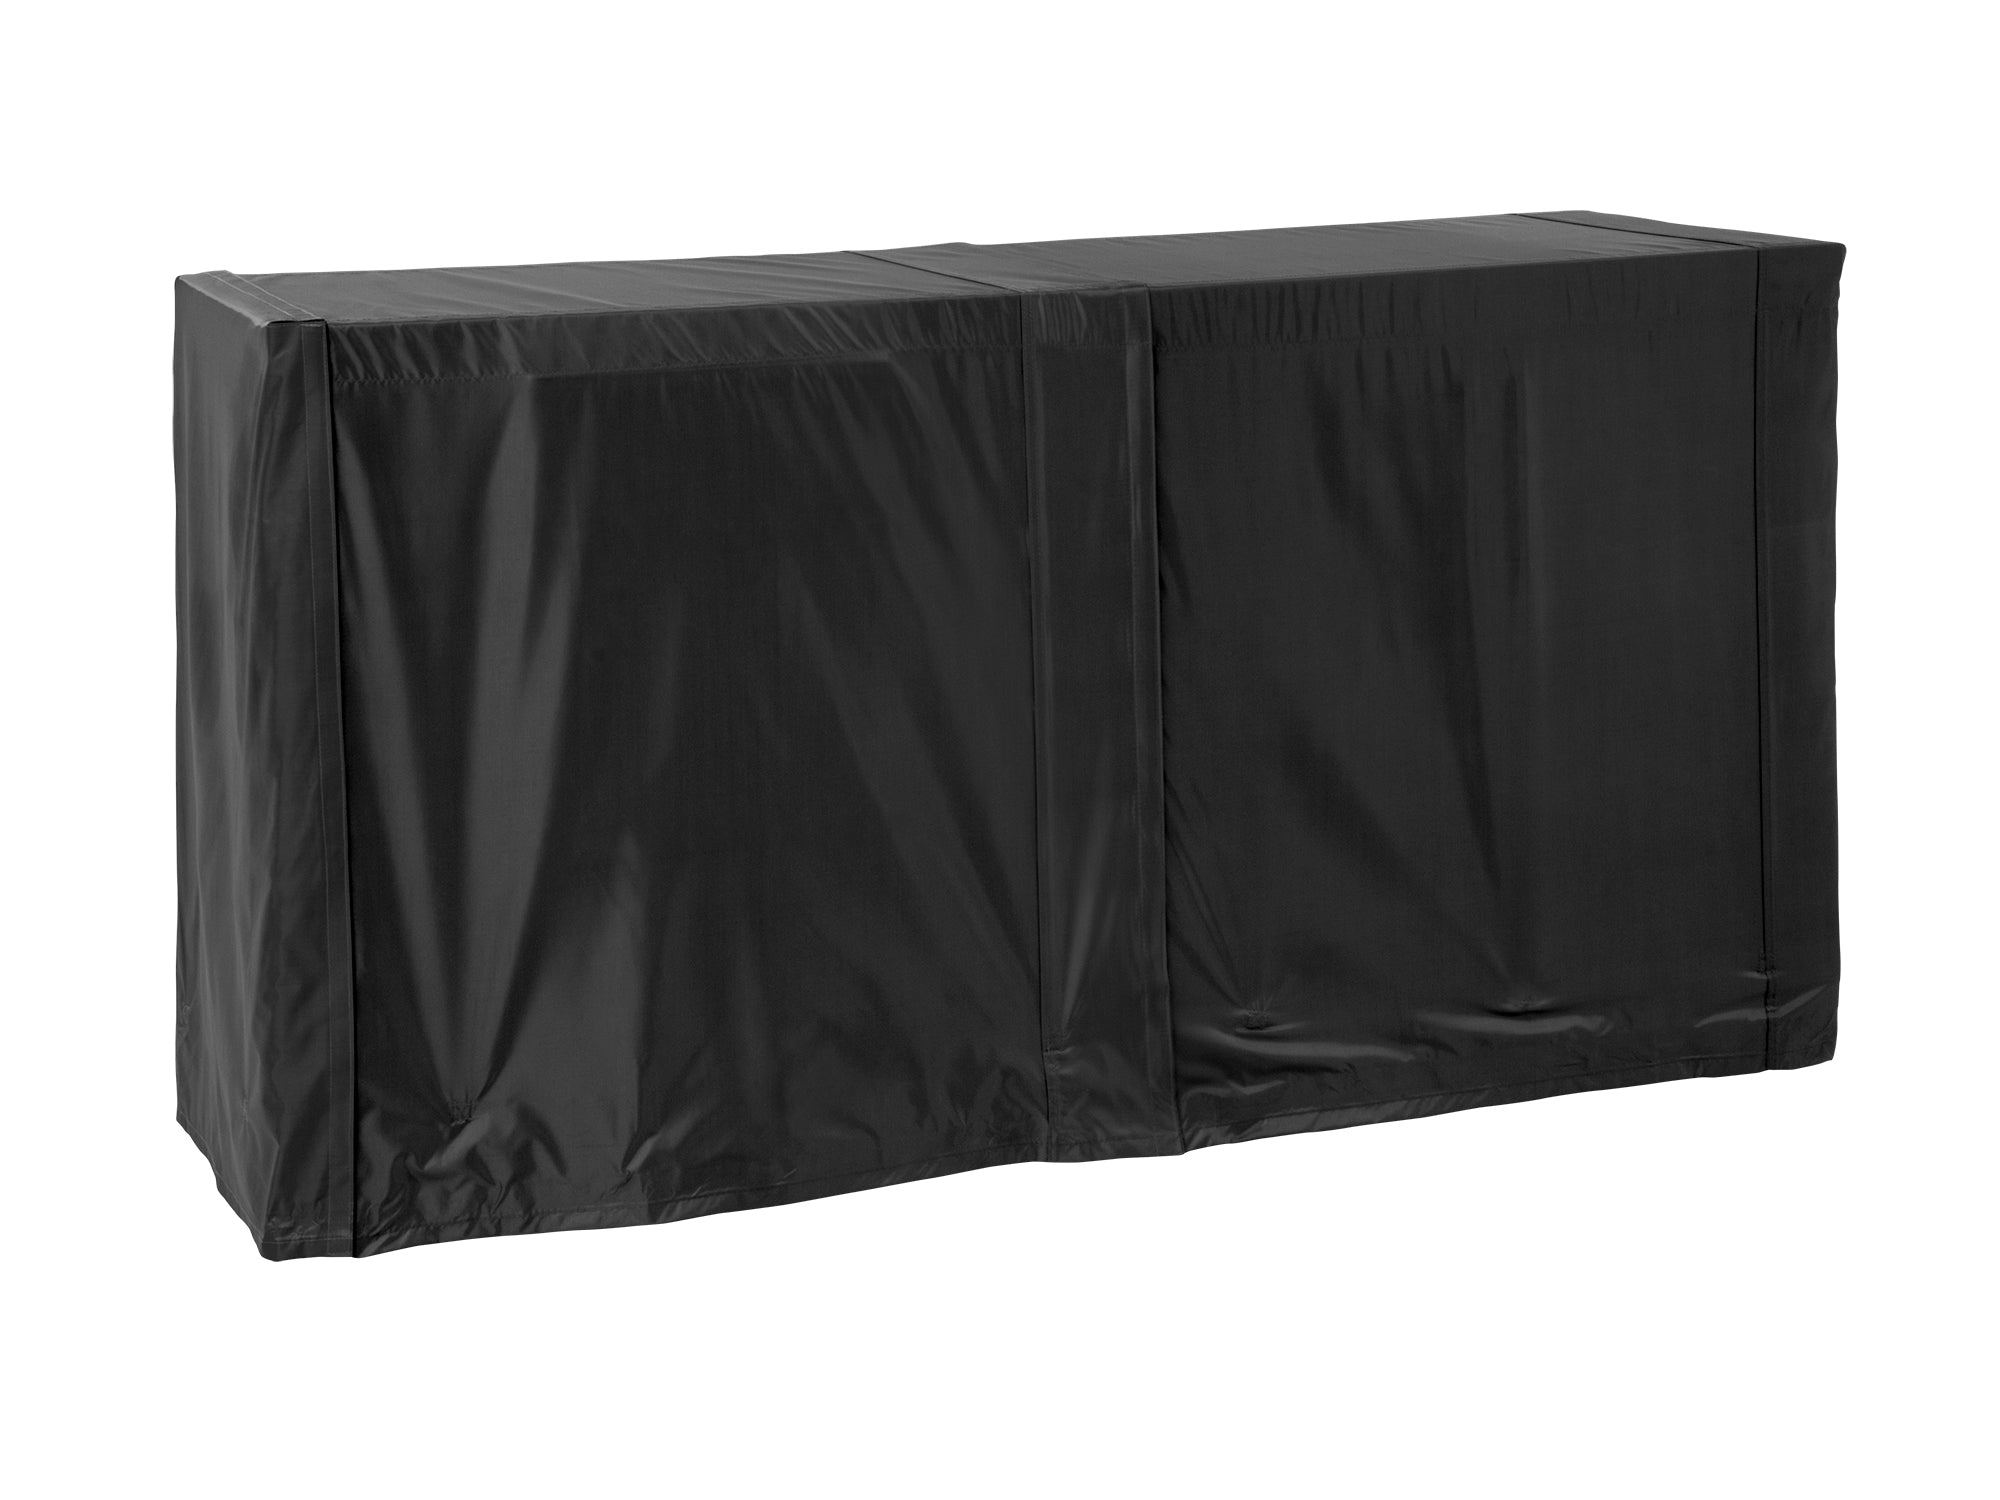 Outdoor Kitchen All-Season Cover Bundle: 40 in. Insert Grill Cabinet Cover, (2) 32 in. Covers, (2) 45 Degree Corner Covers, Right/Left Side Panel Covers